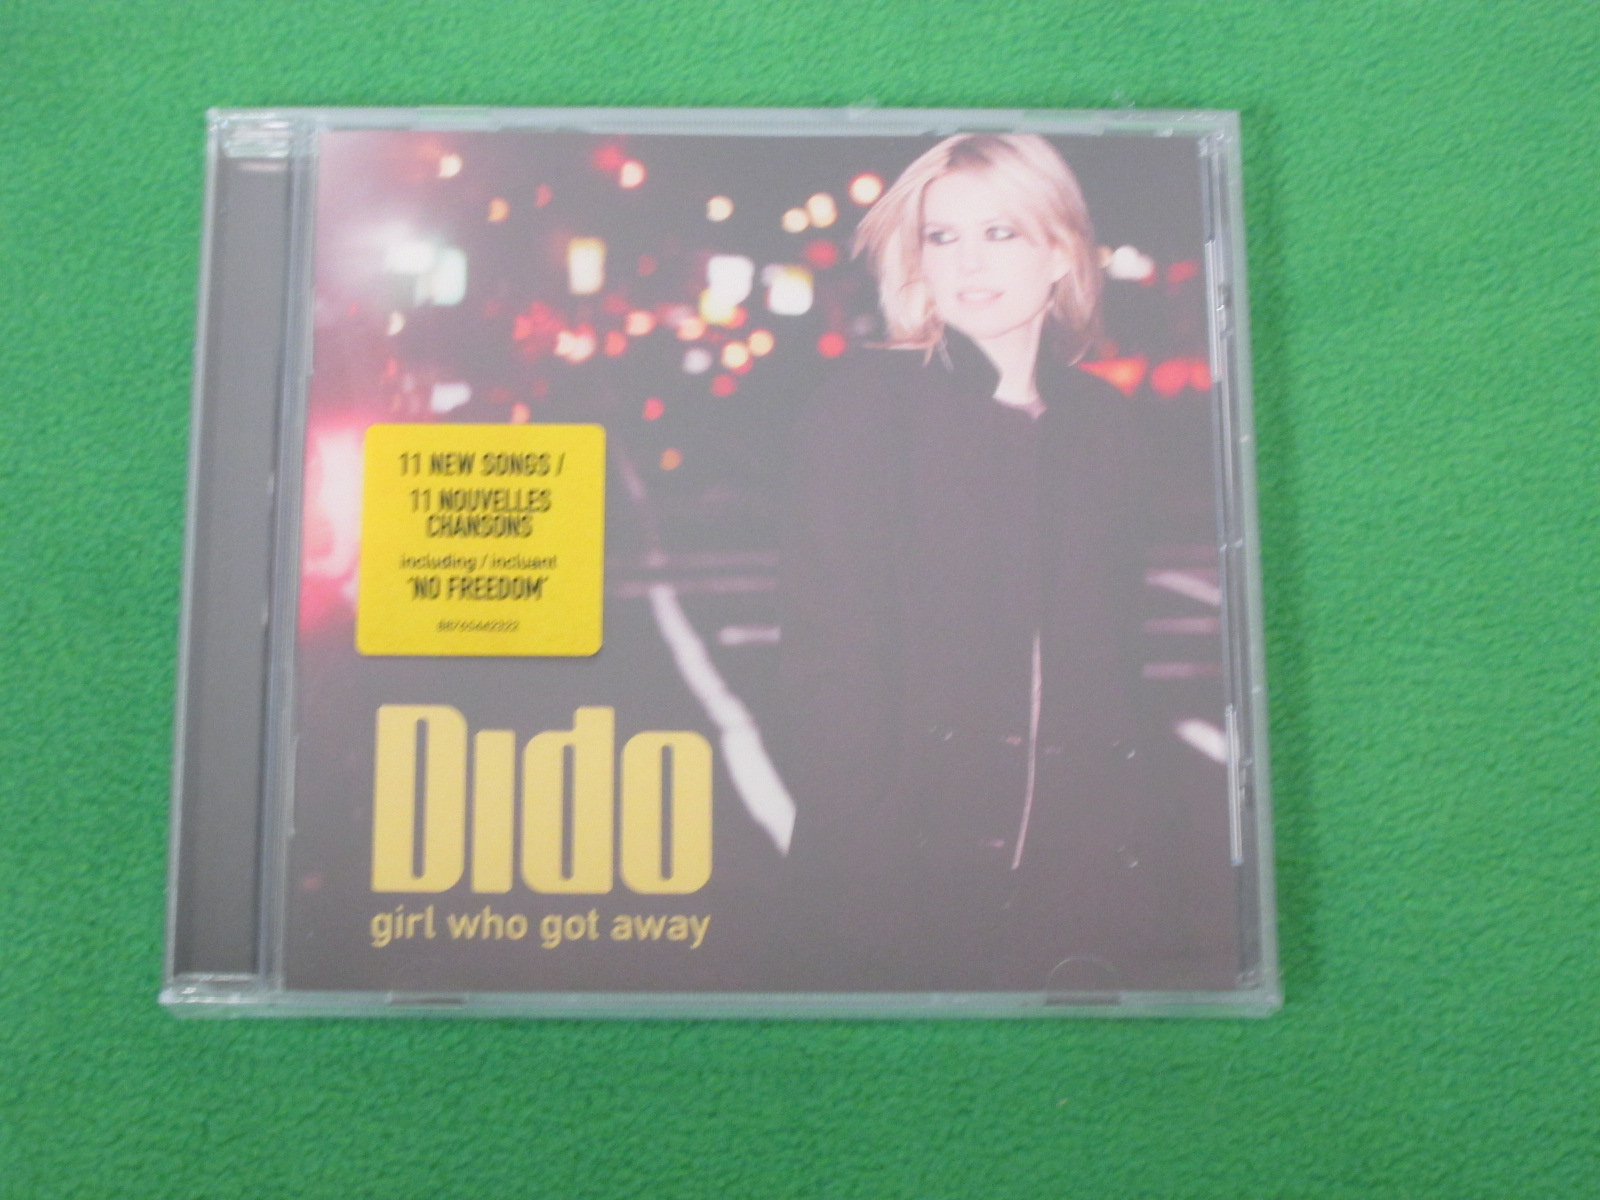 Girl Who Got Away By Dido On Audio CD